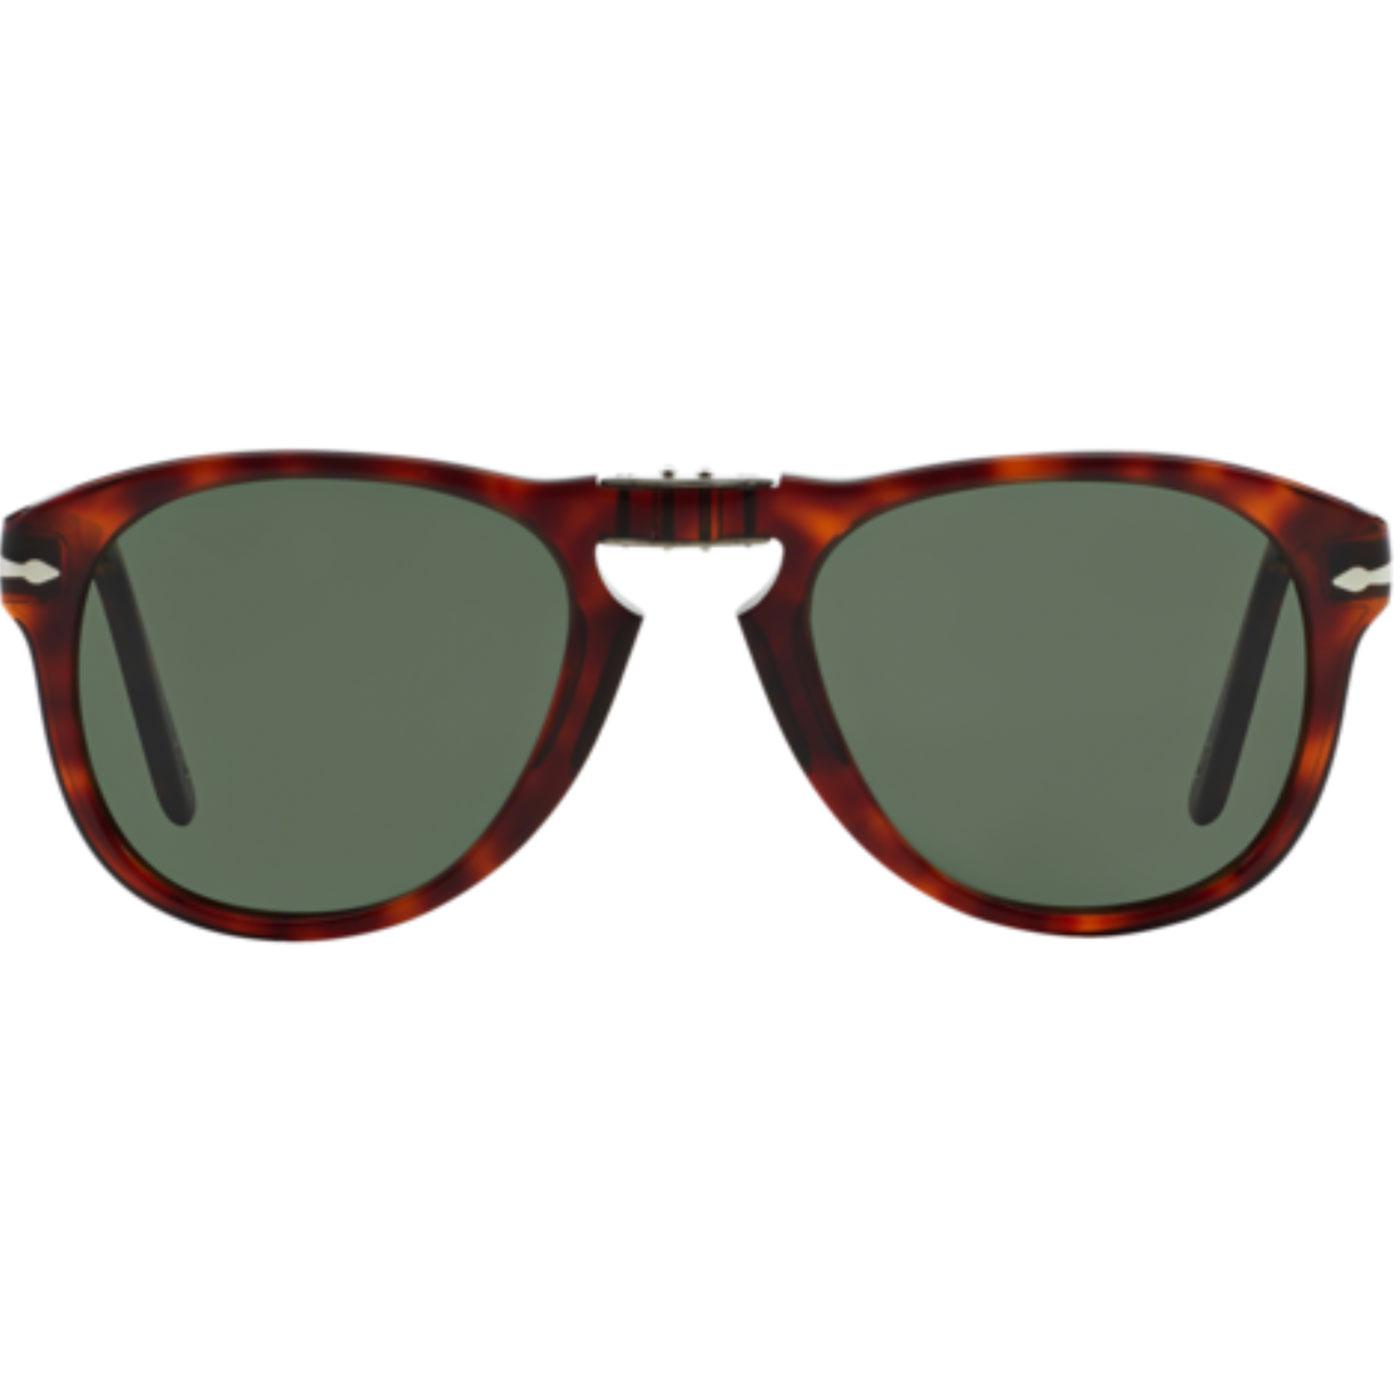 PERSOL Steve McQueen Folding 714 Series Sunglasses